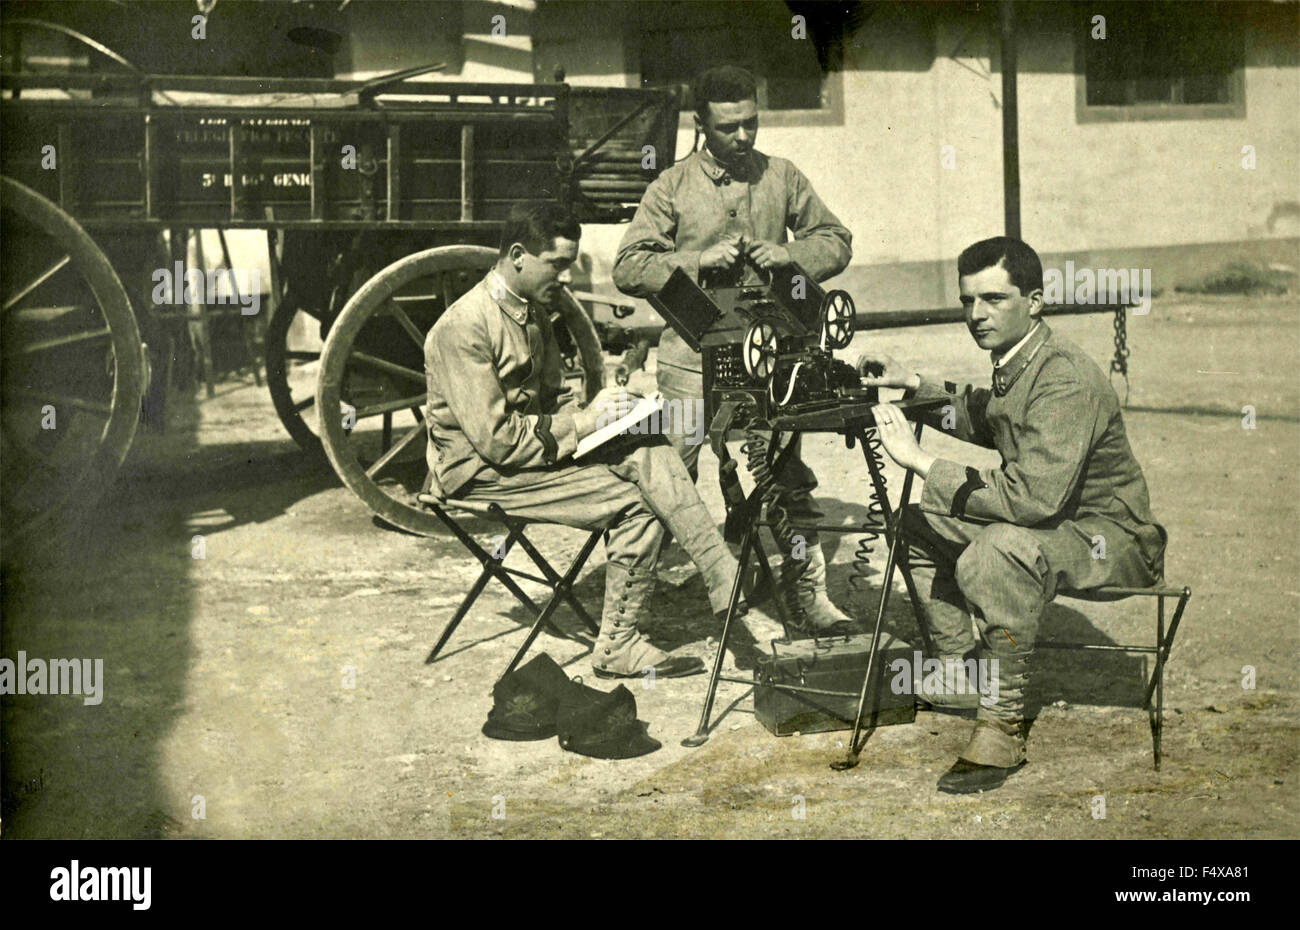 Three soldiers broadcast messages with Morse code, Italy - Stock Image